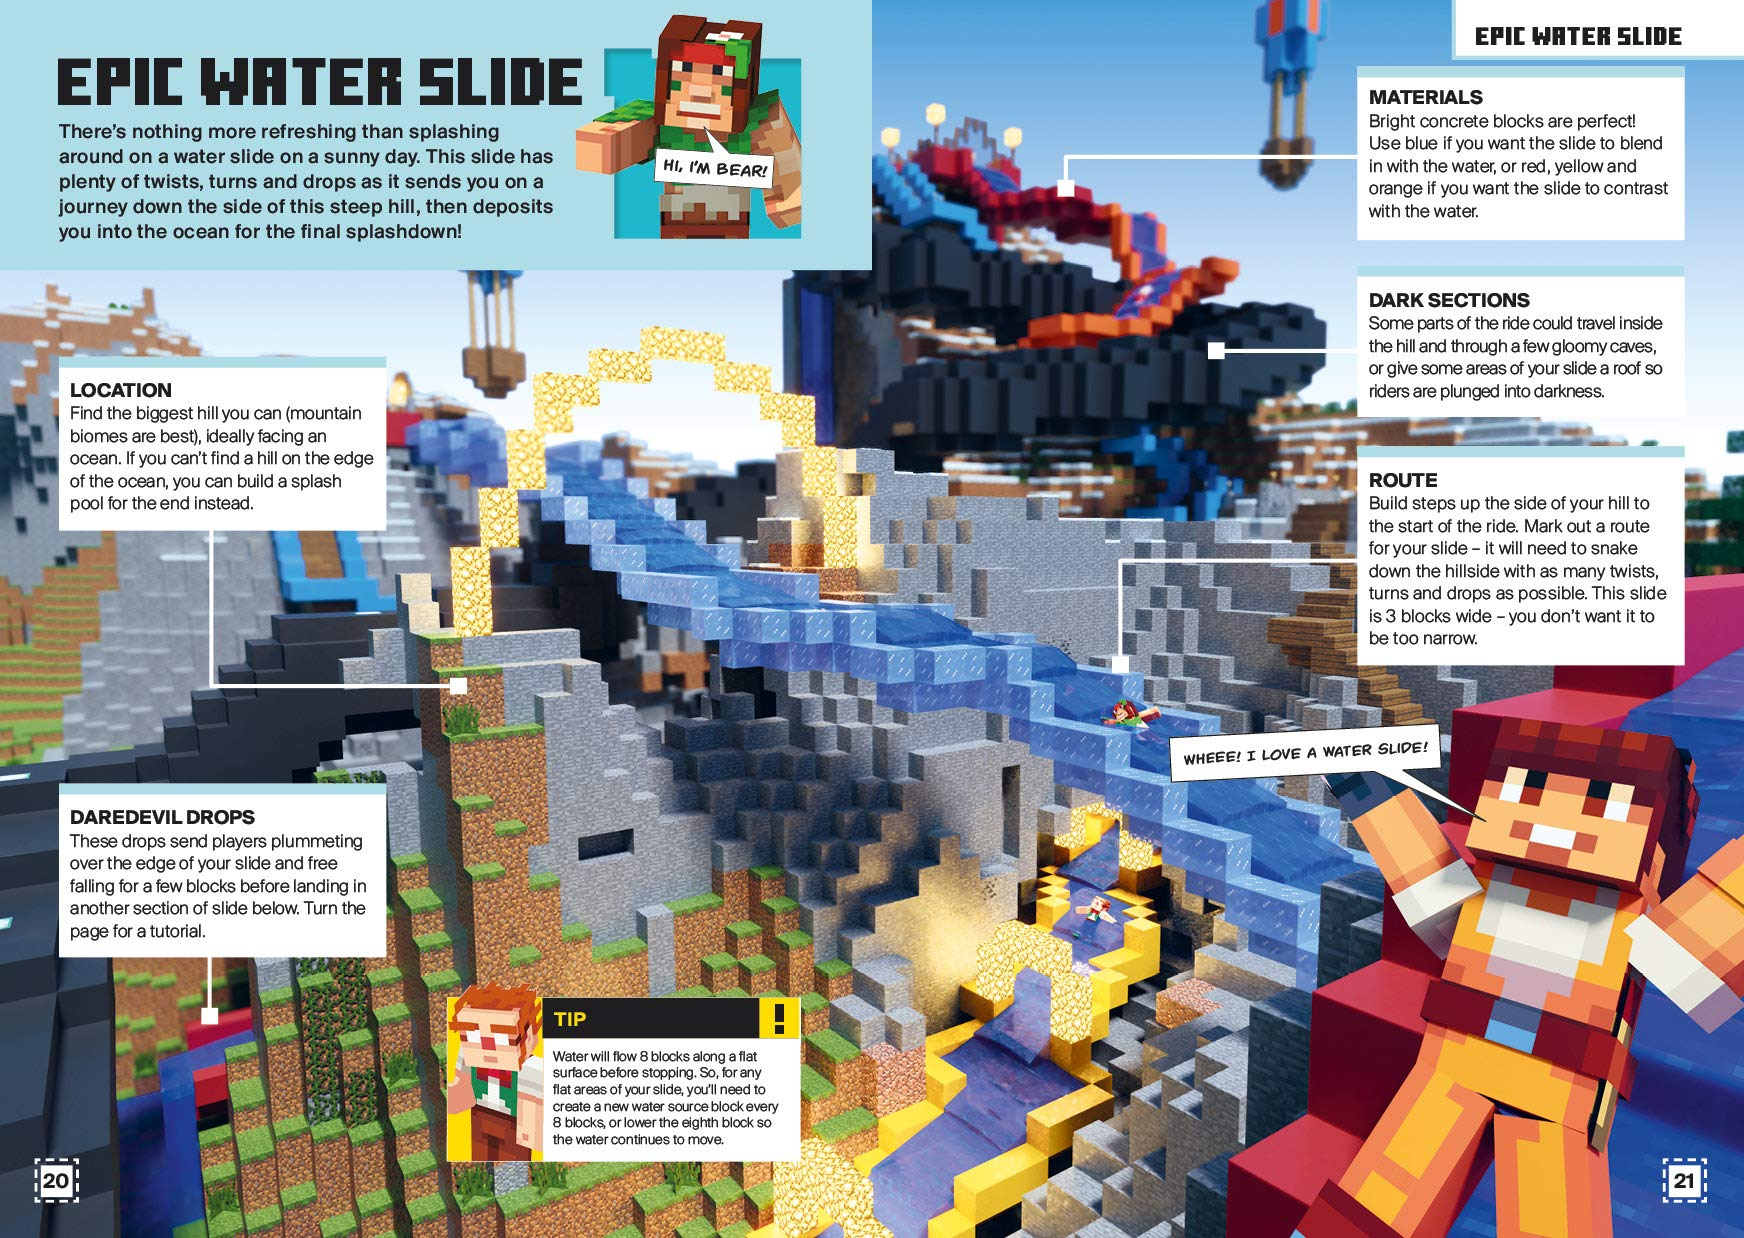 Minecraft: Let's Build! Theme Park Adventure: Mojang Ab, The